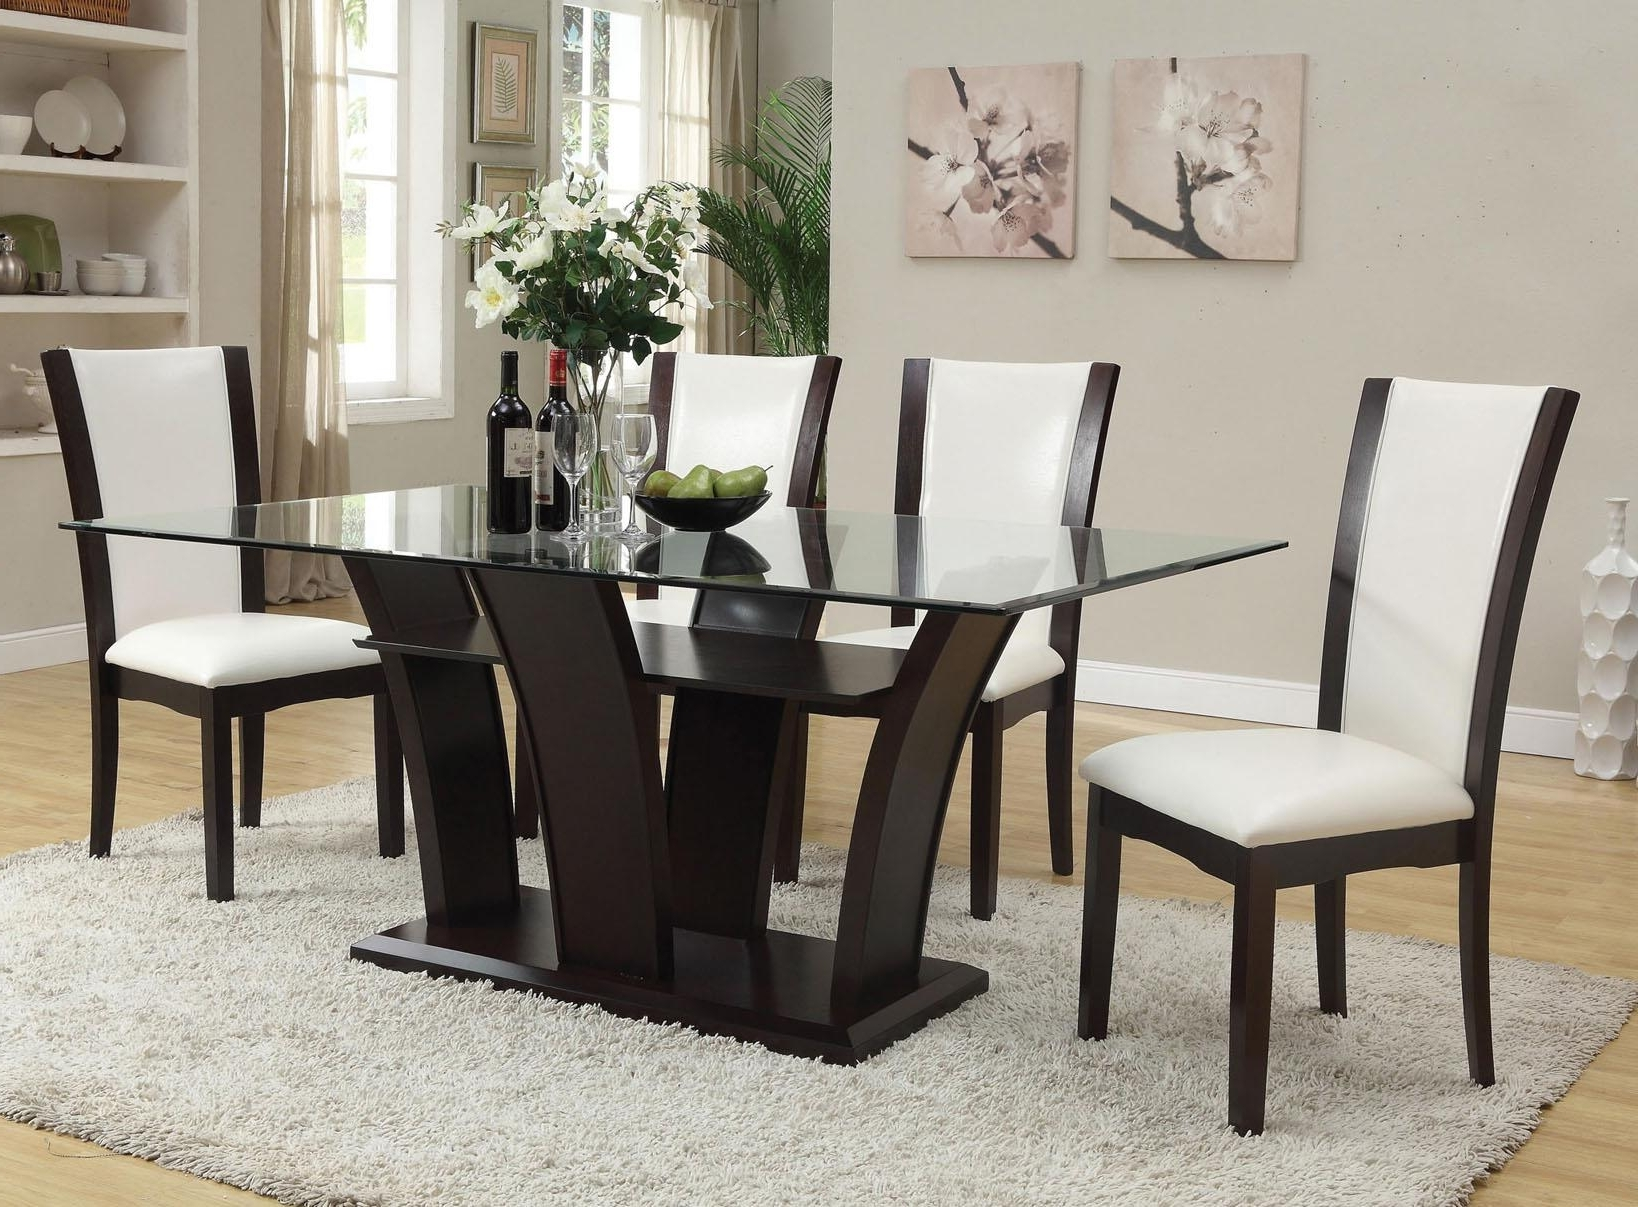 Acme Furniture Malik 70505 Contemporary Casual Dining Table W/ Glass In Well Known Contemporary Dining Sets (View 2 of 25)